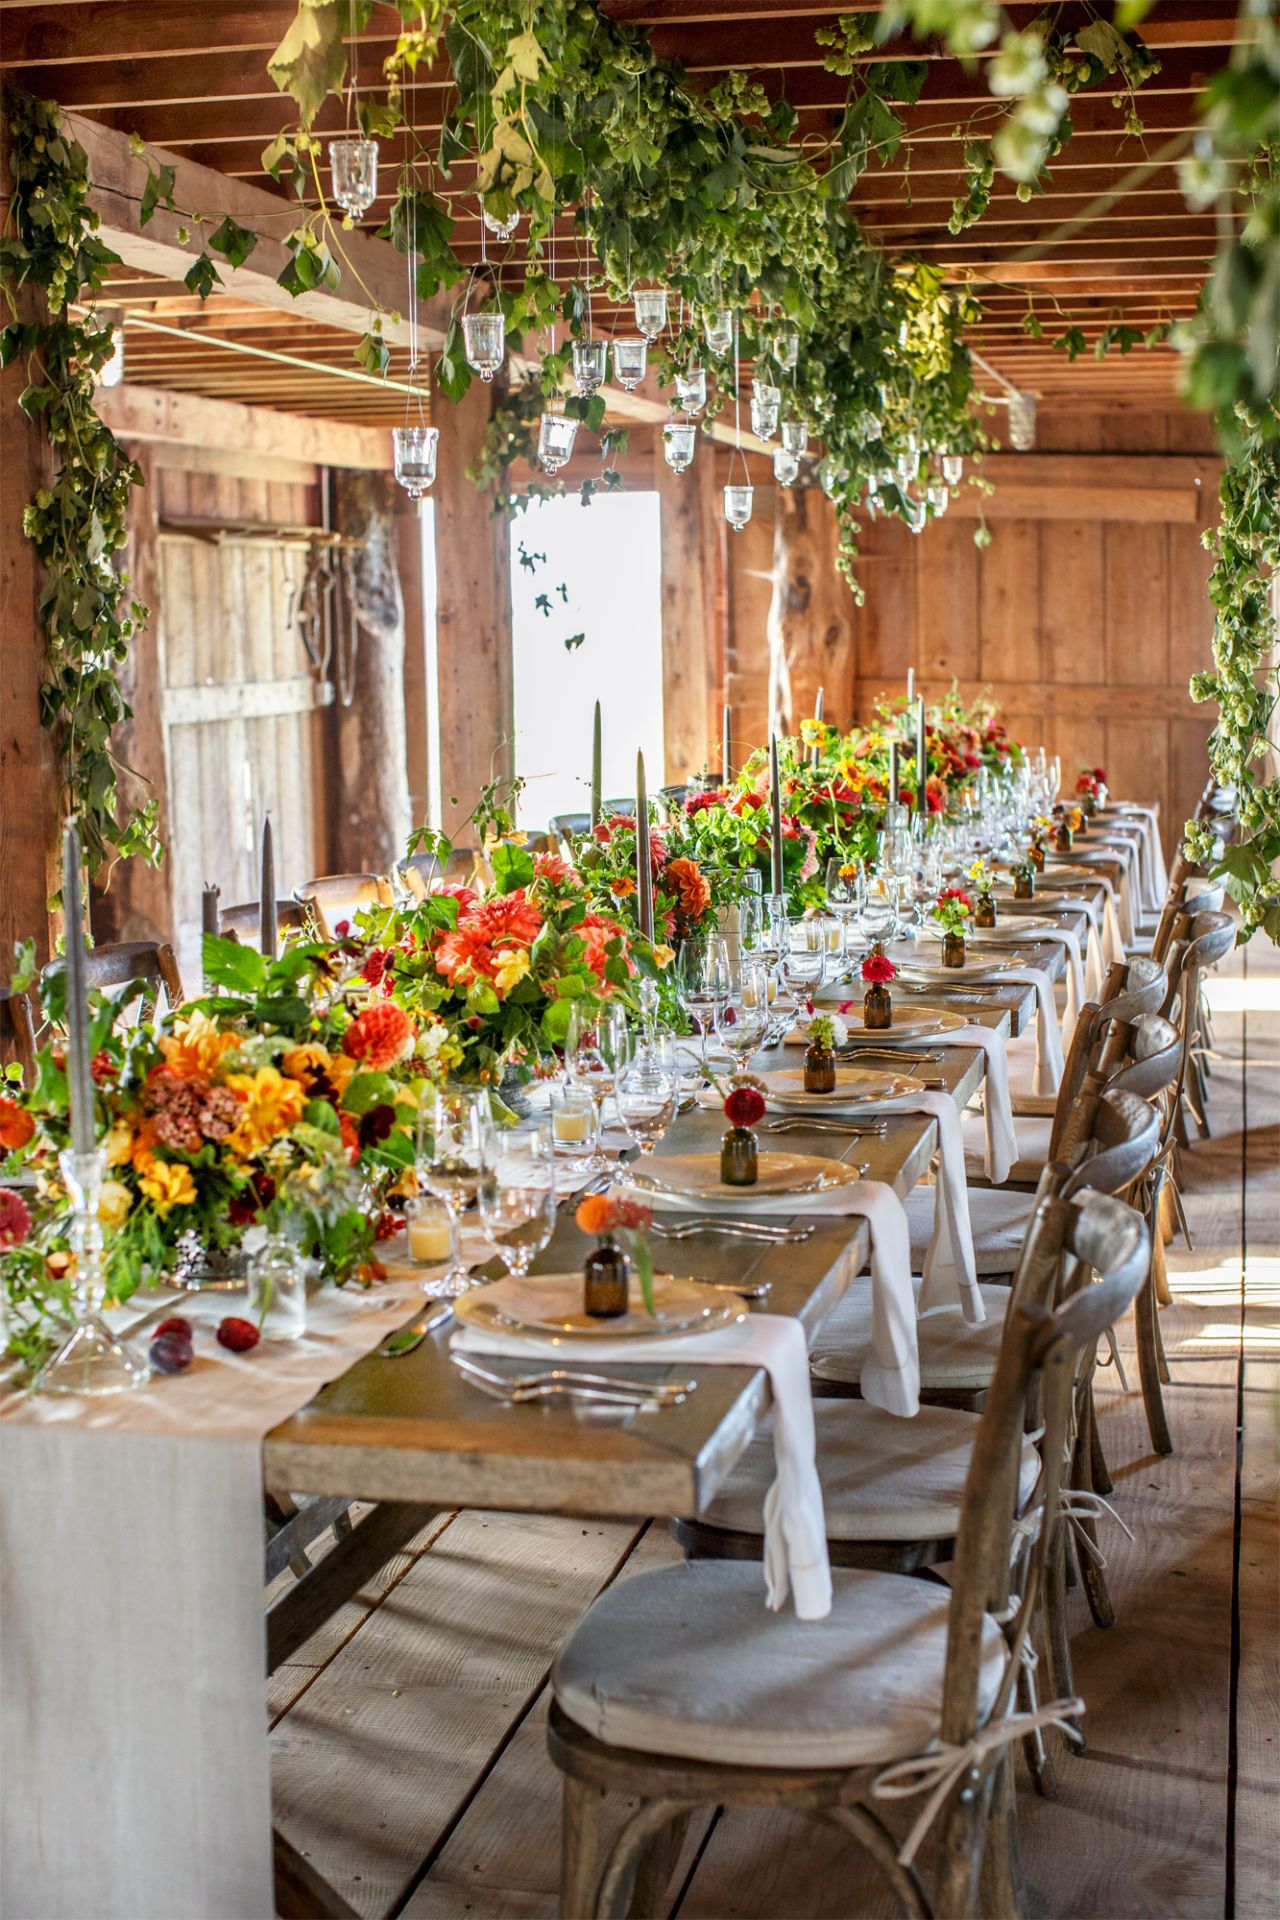 Florists Flower Lovers Start Planning Your Trip